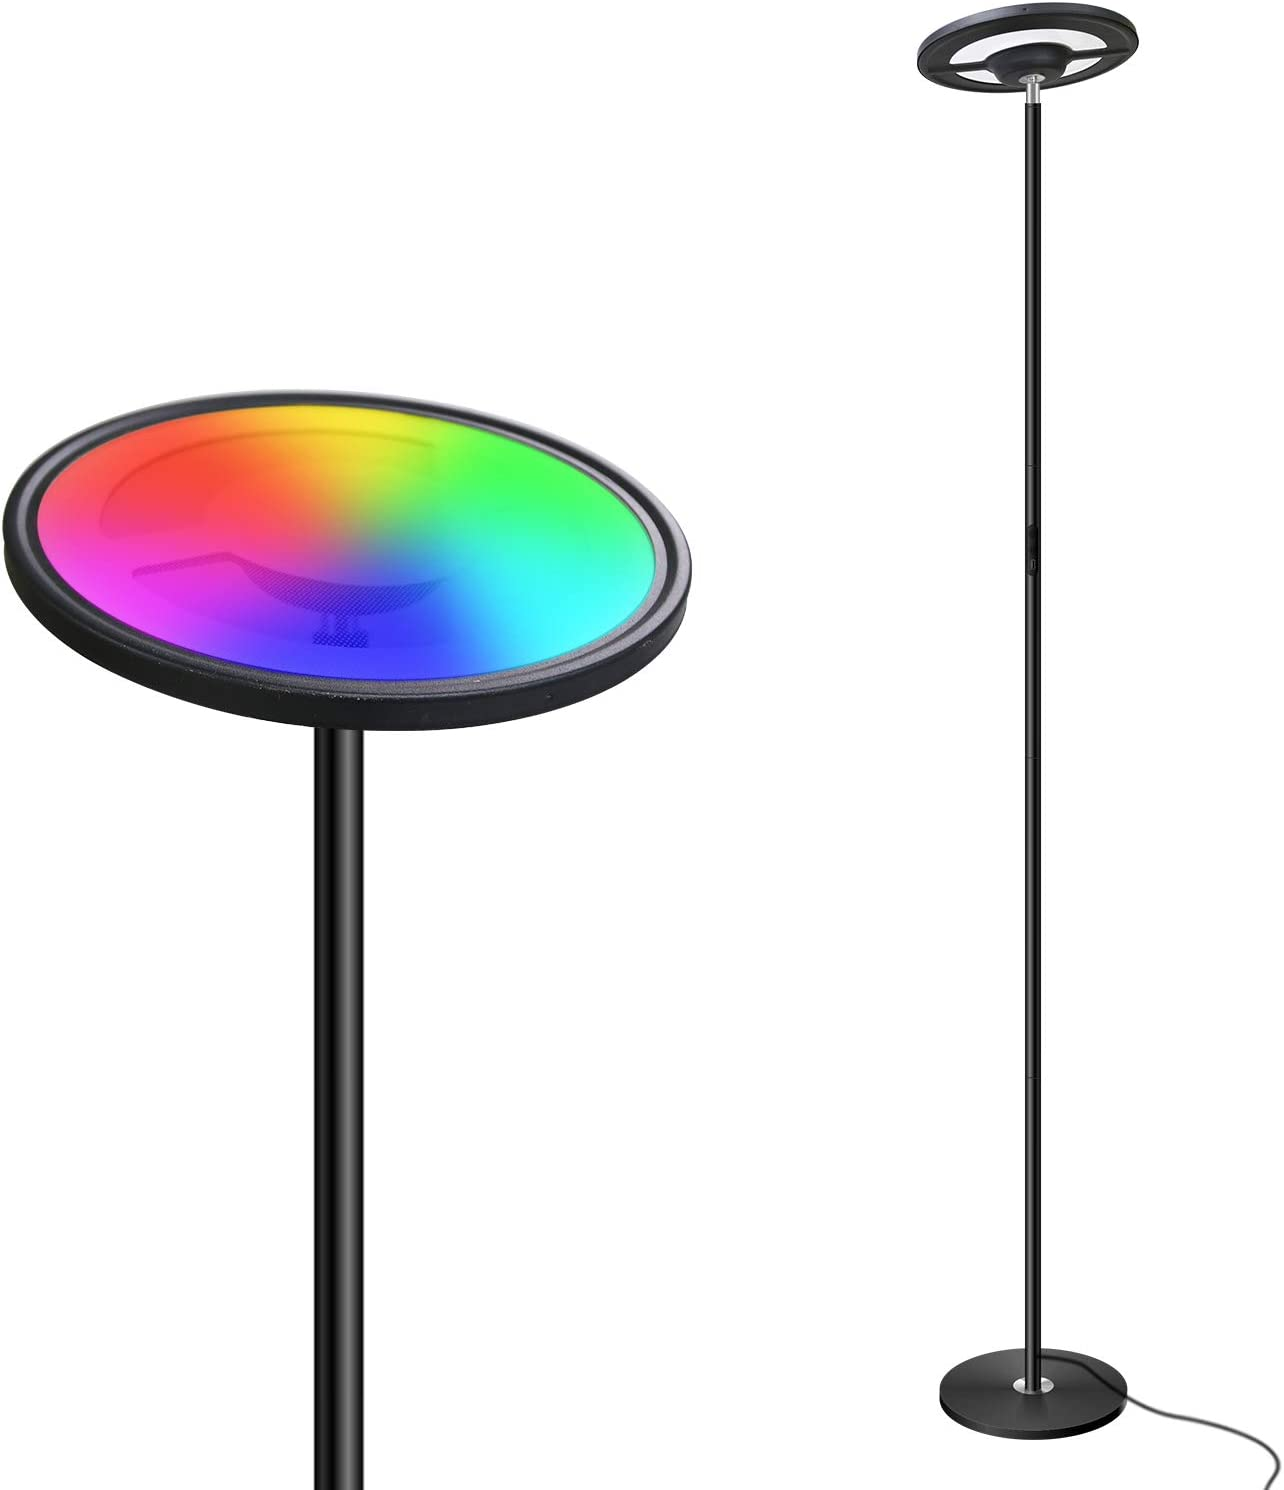 Lifeholder Floor Lamp,Smart WiFi Dimmable Floor Lamp with Touch&APP&Voice Control,LED Floor Lamp Compatible with Alexa Echo&Google Home,RGBW Standing Lamps for Bedroom,Living Room,Office